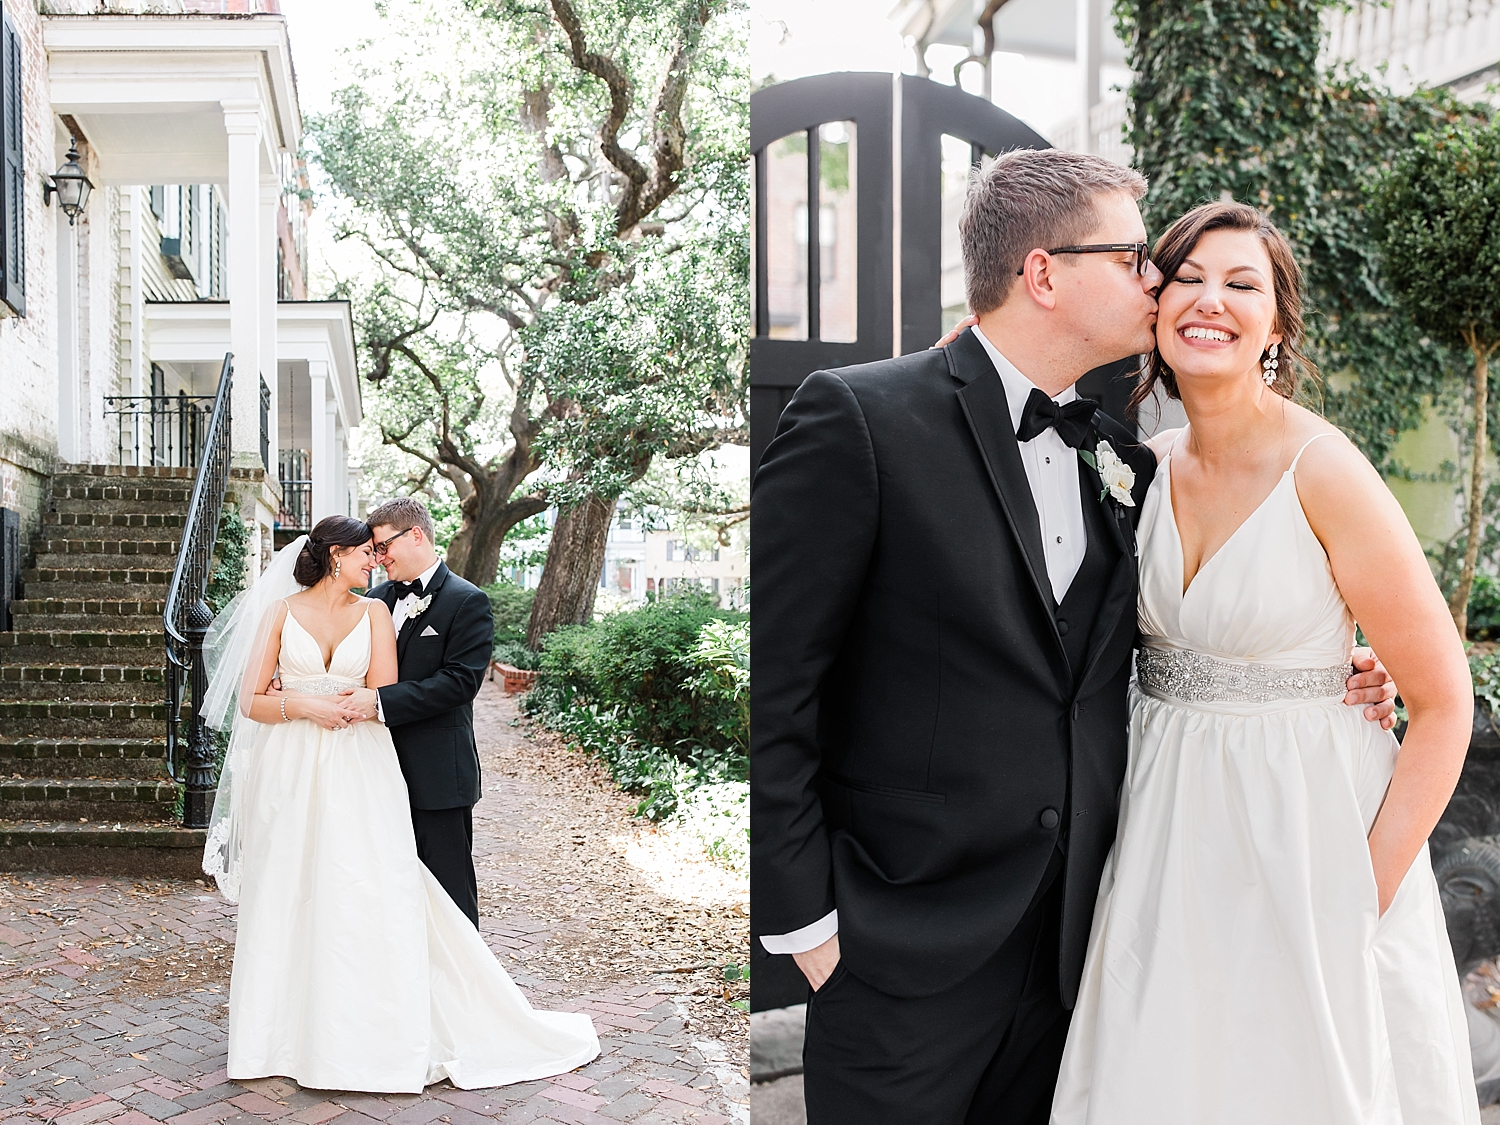 savannah-wedding-photograph-the-westin-savannnah-jb-marie-photography